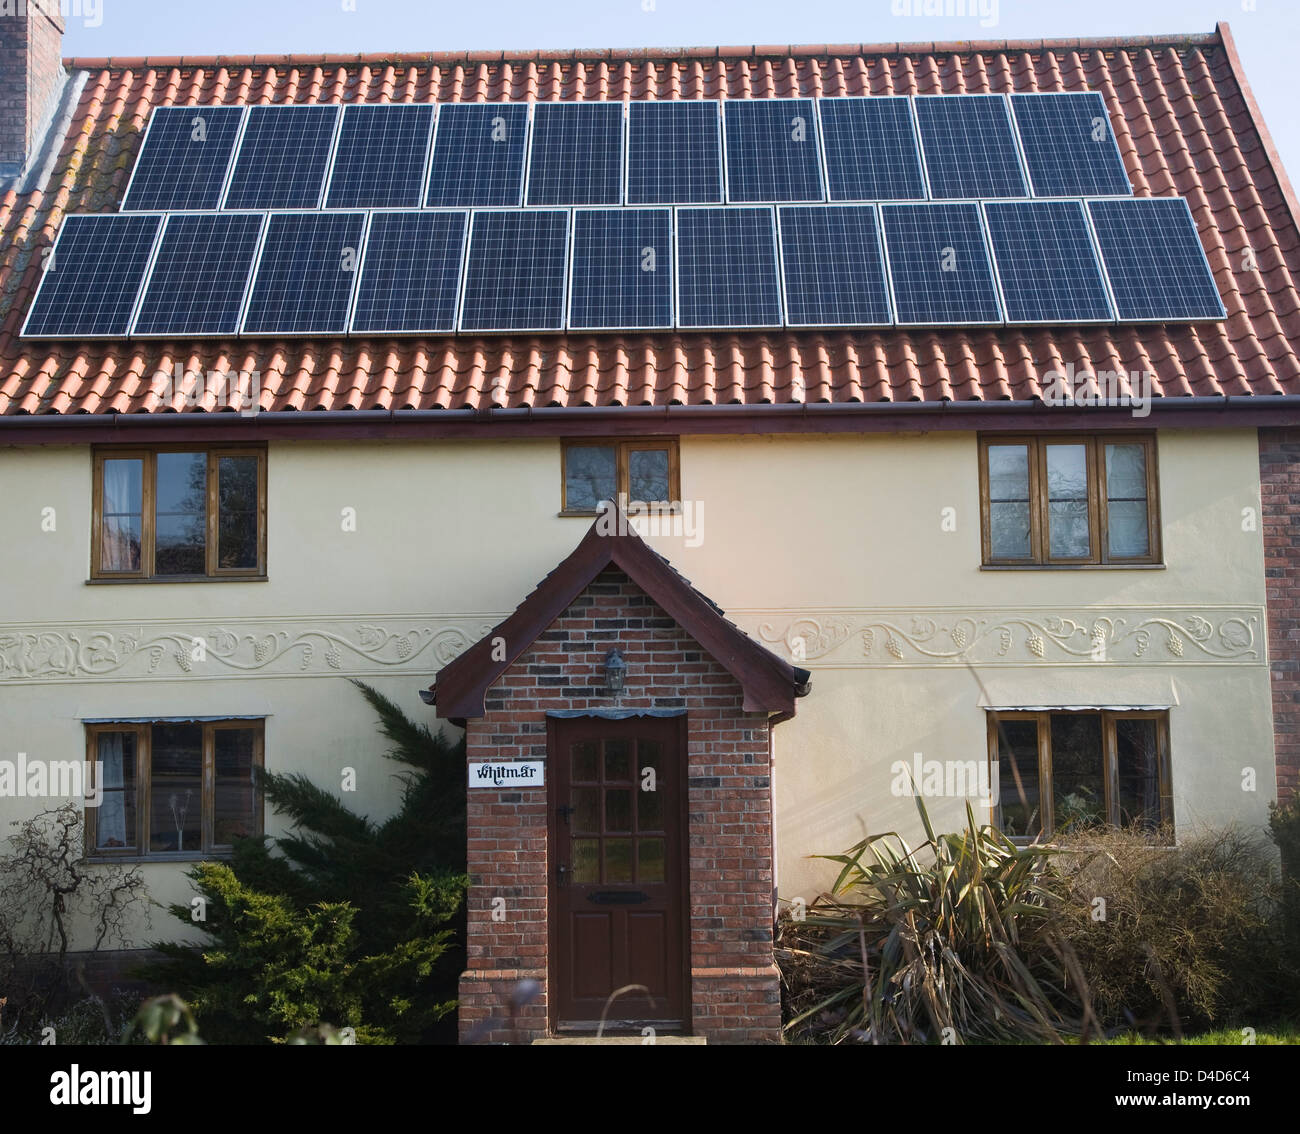 Solar panels on roof of old cottage, Yoxford, Suffolk, England - Stock Image